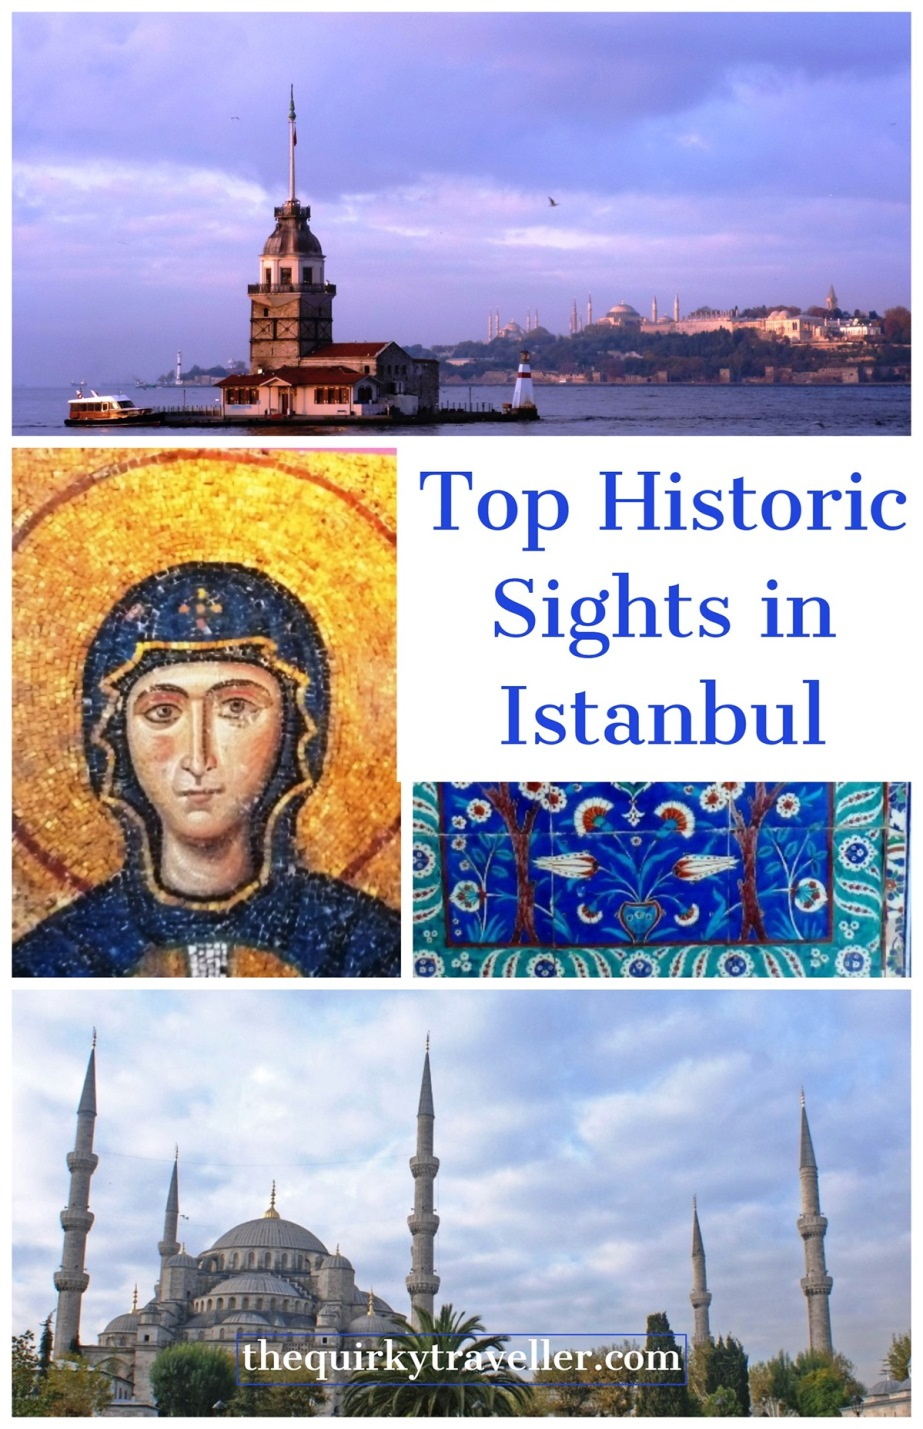 Top sights in Istanbul Turkey - image Zoe Dawes